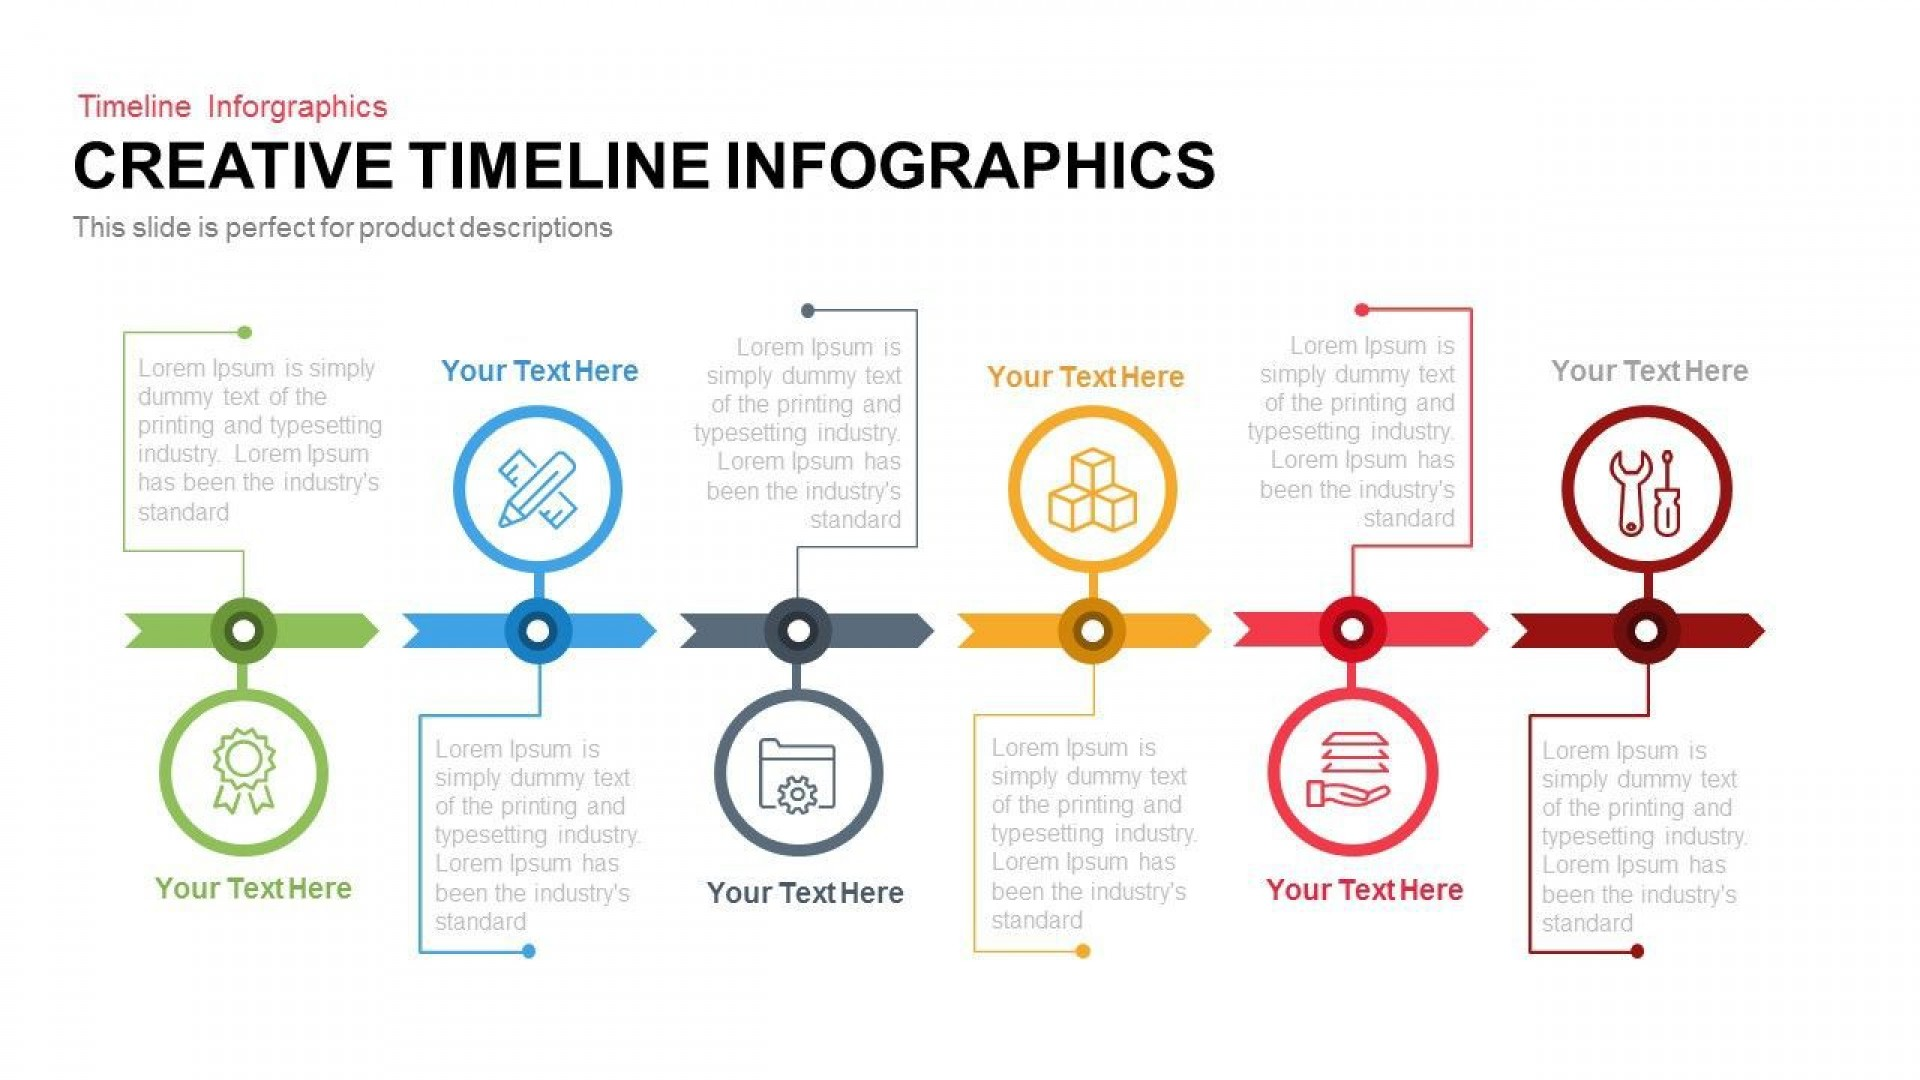 000 Awful Timeline Format For Presentation Image  Example Graph Template Powerpoint Download1920